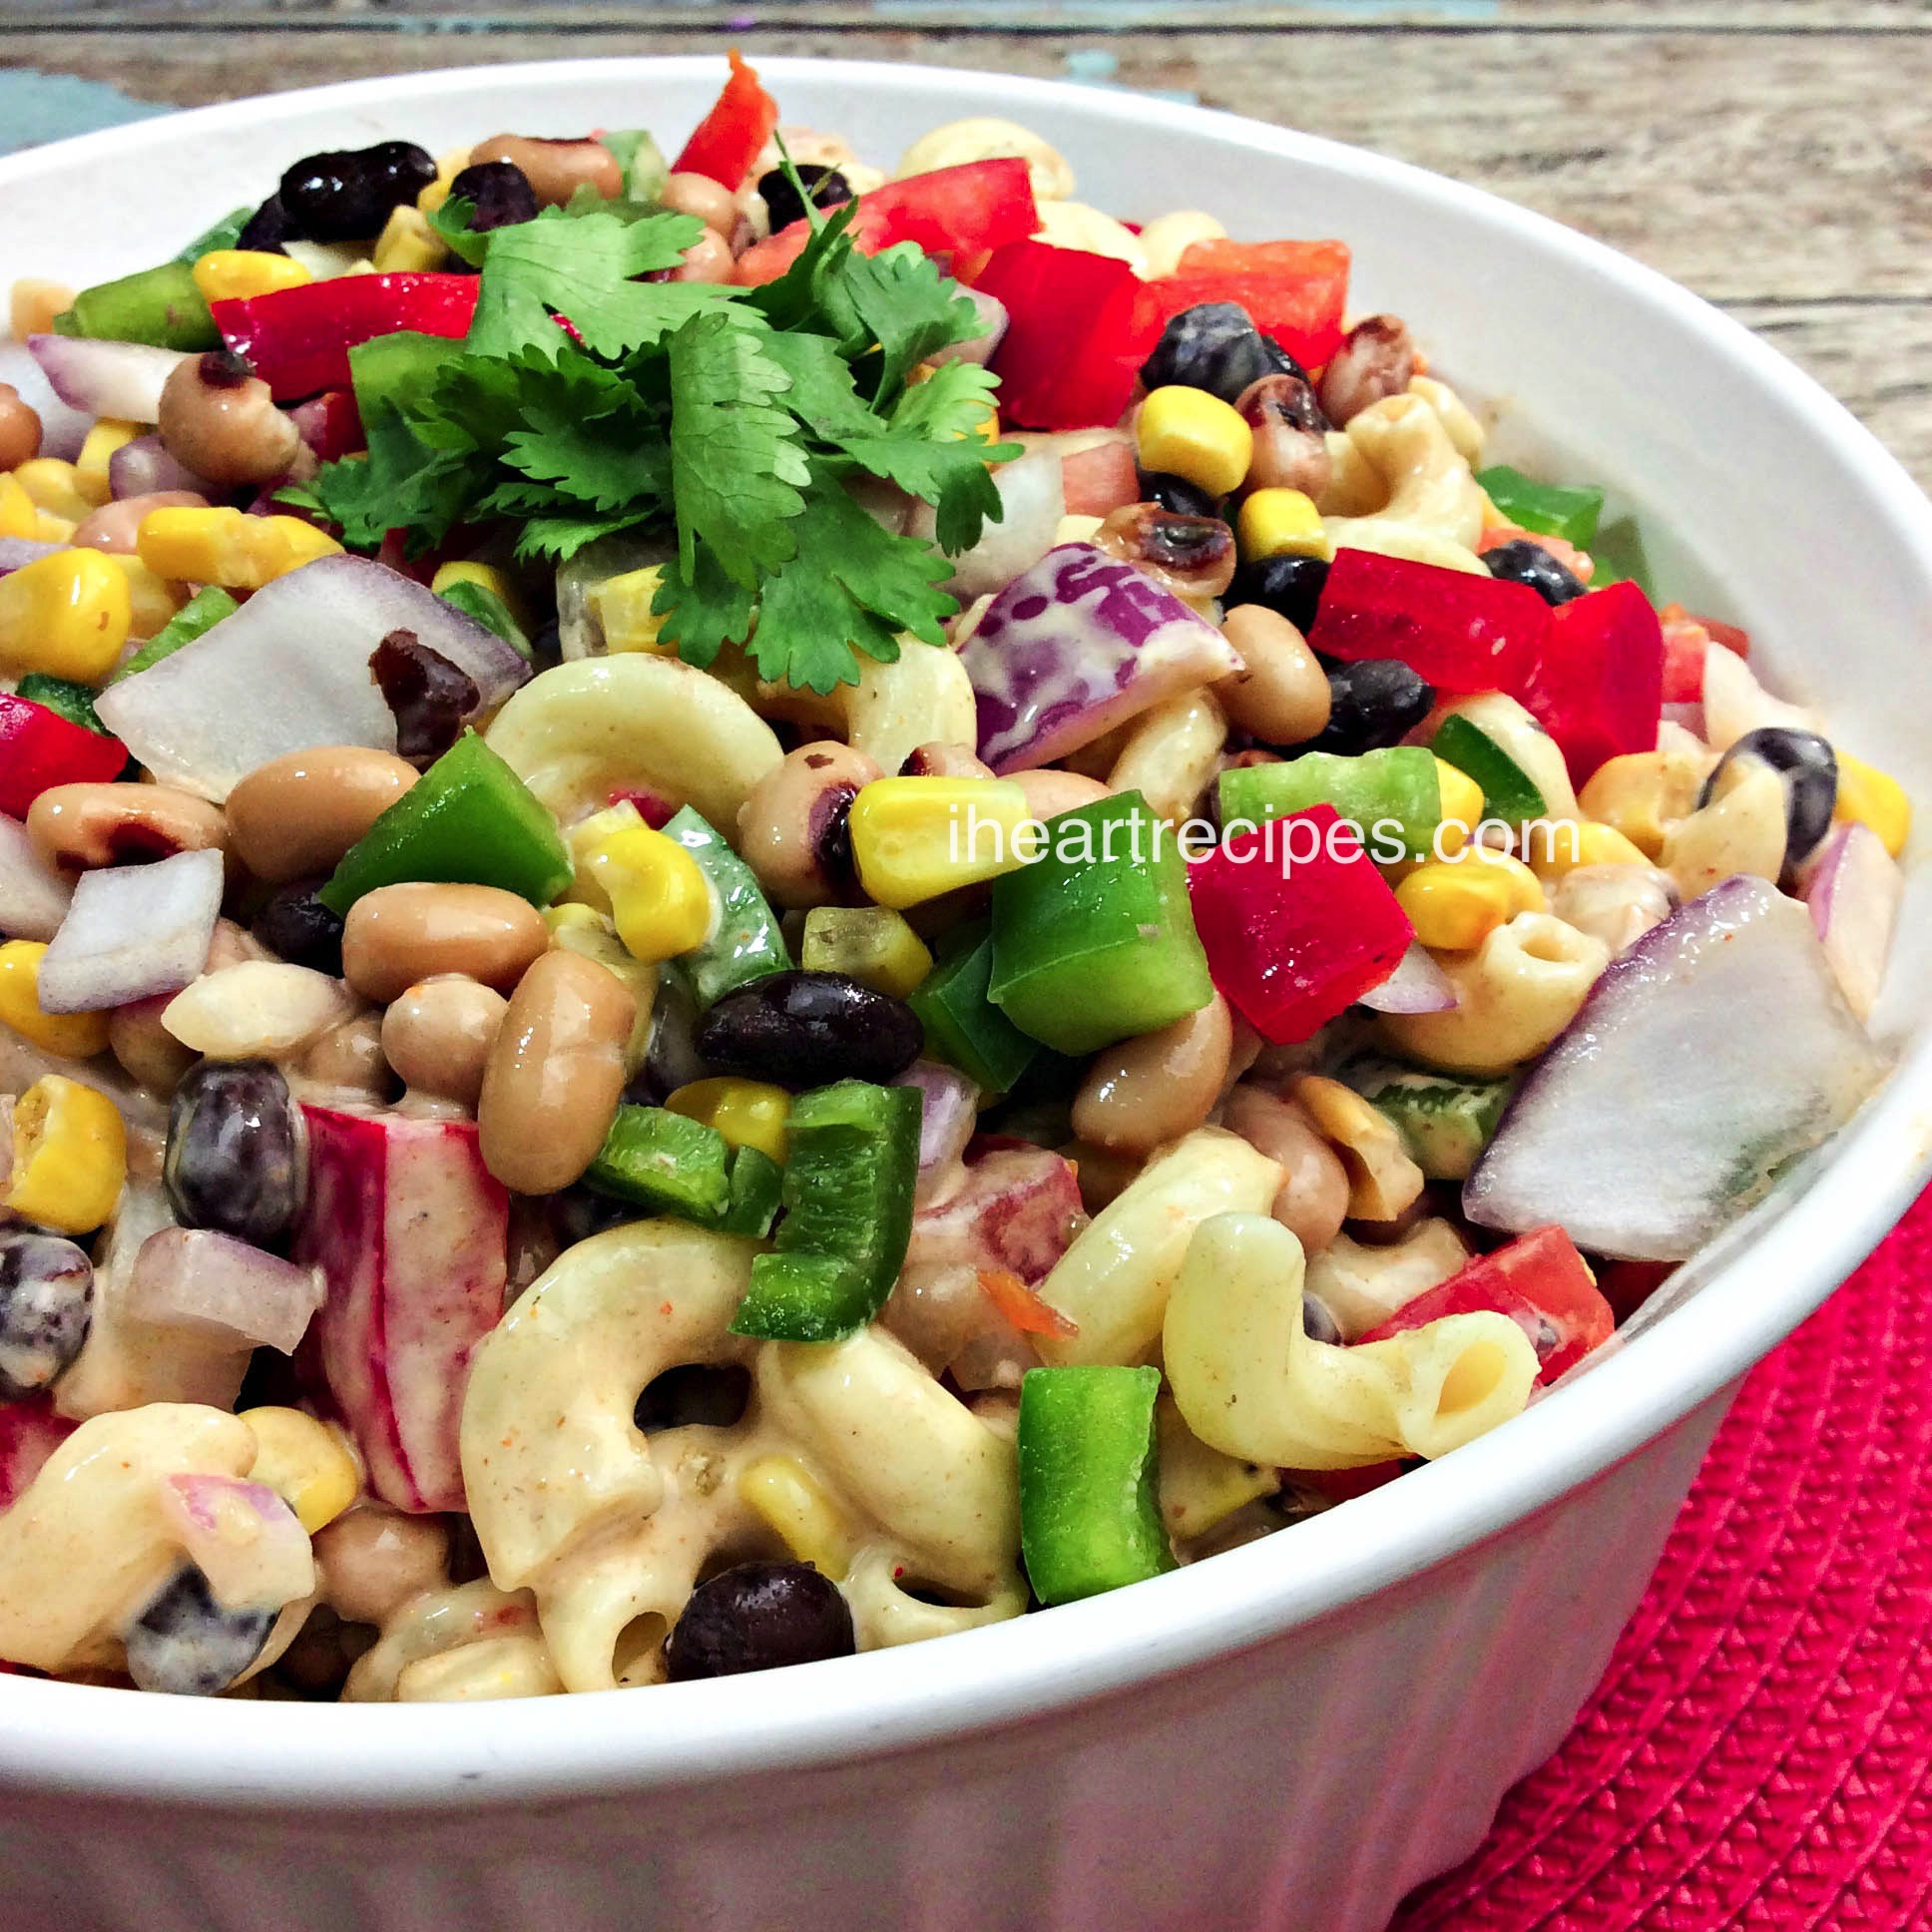 Whip this Texas Caviar Macaroni Salad up for a simple addition to any summer party